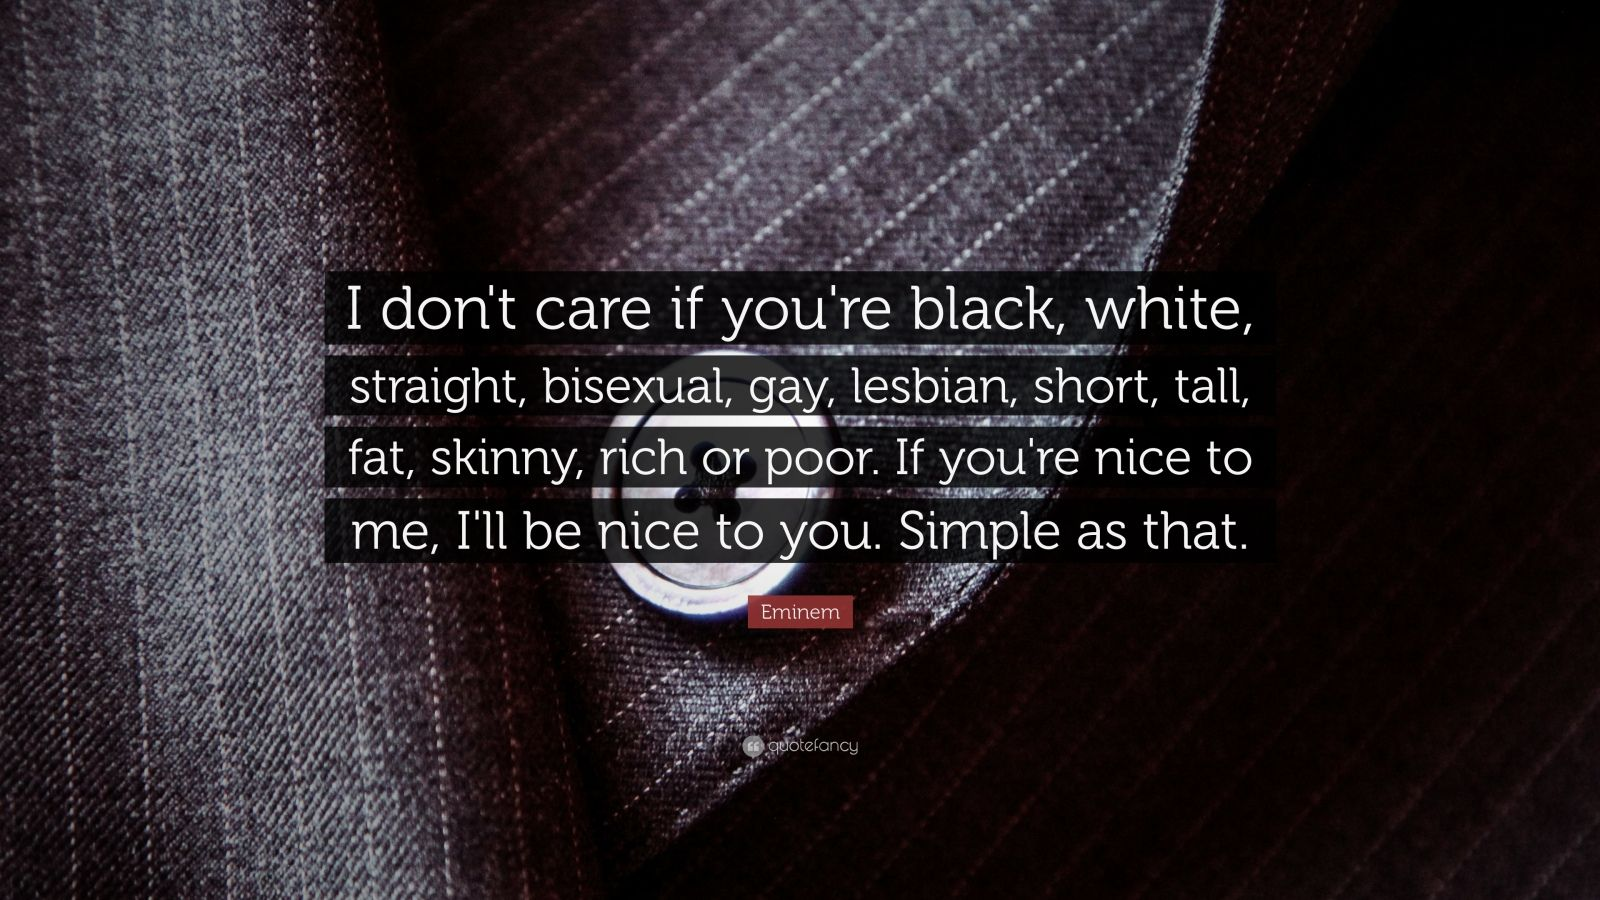 eminem quotes i dont care if your - photo #4